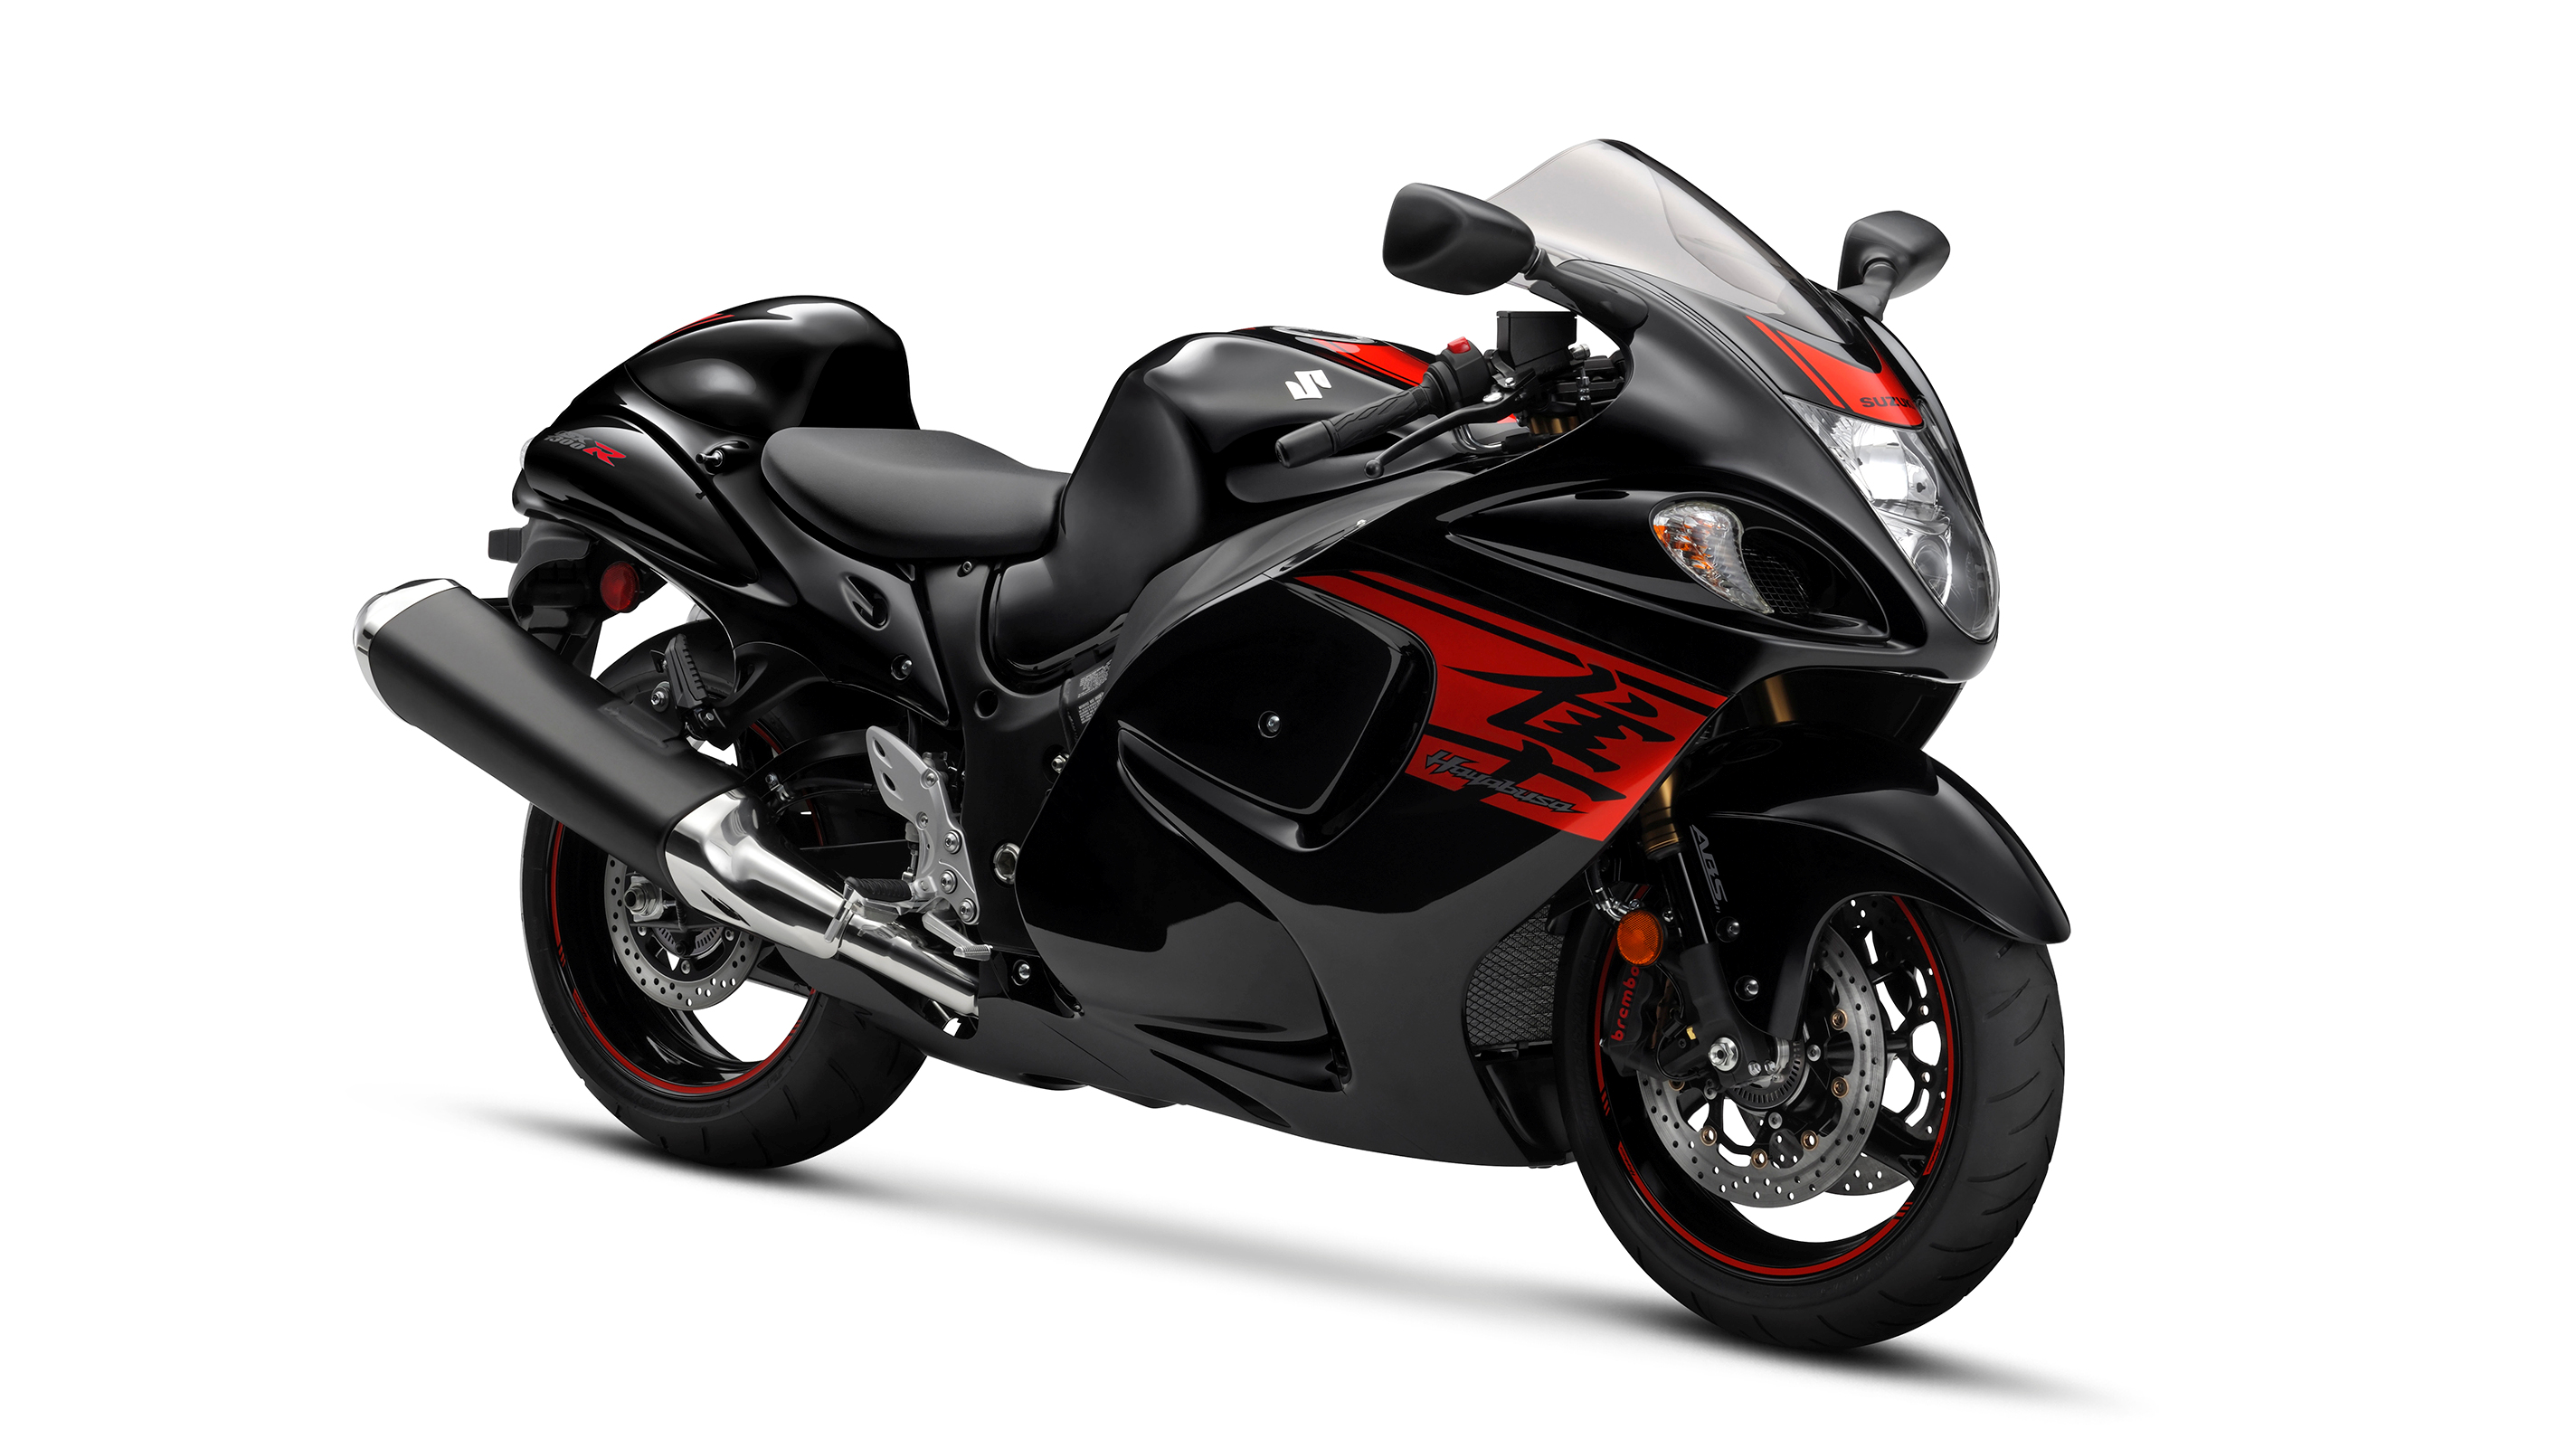 2016 - 2018 Suzuki Hayabusa | Top Speed